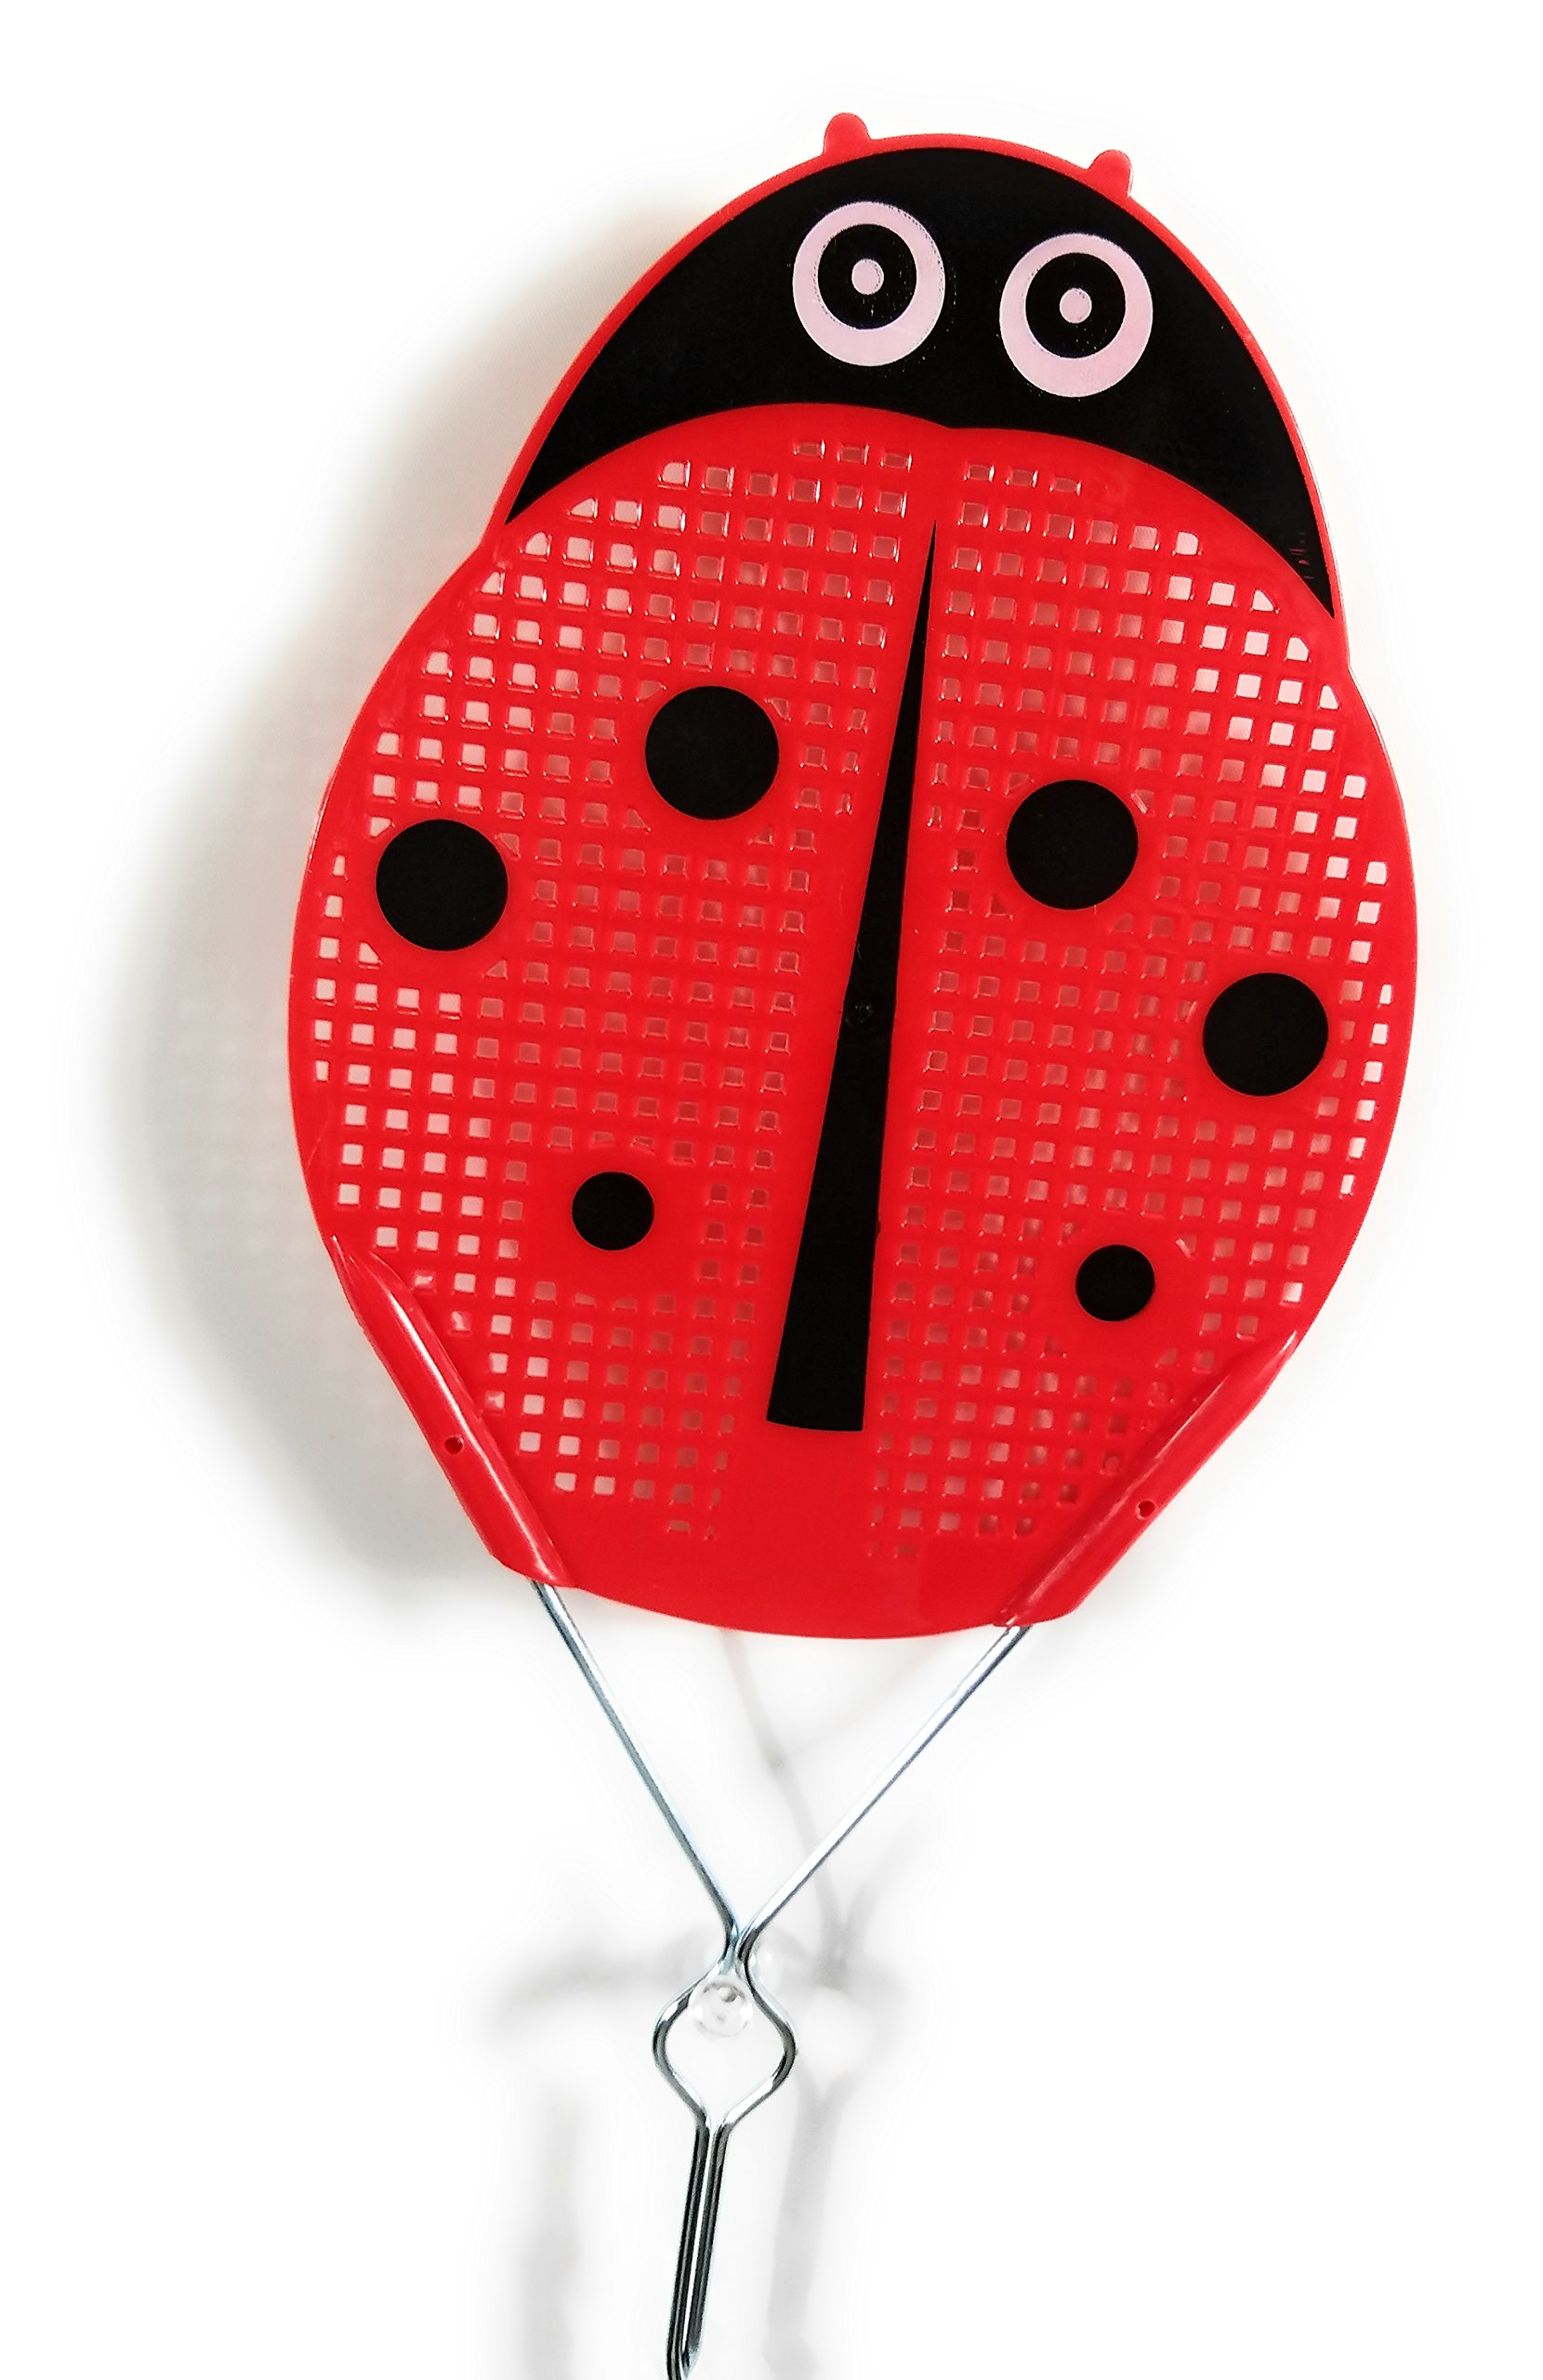 Essentials Fly Swatter Killer and Bug Long Metal Handle ( 19 inch ) Hand Swatters for Flies Metal Handle Fly Swatter (Red ladybug)